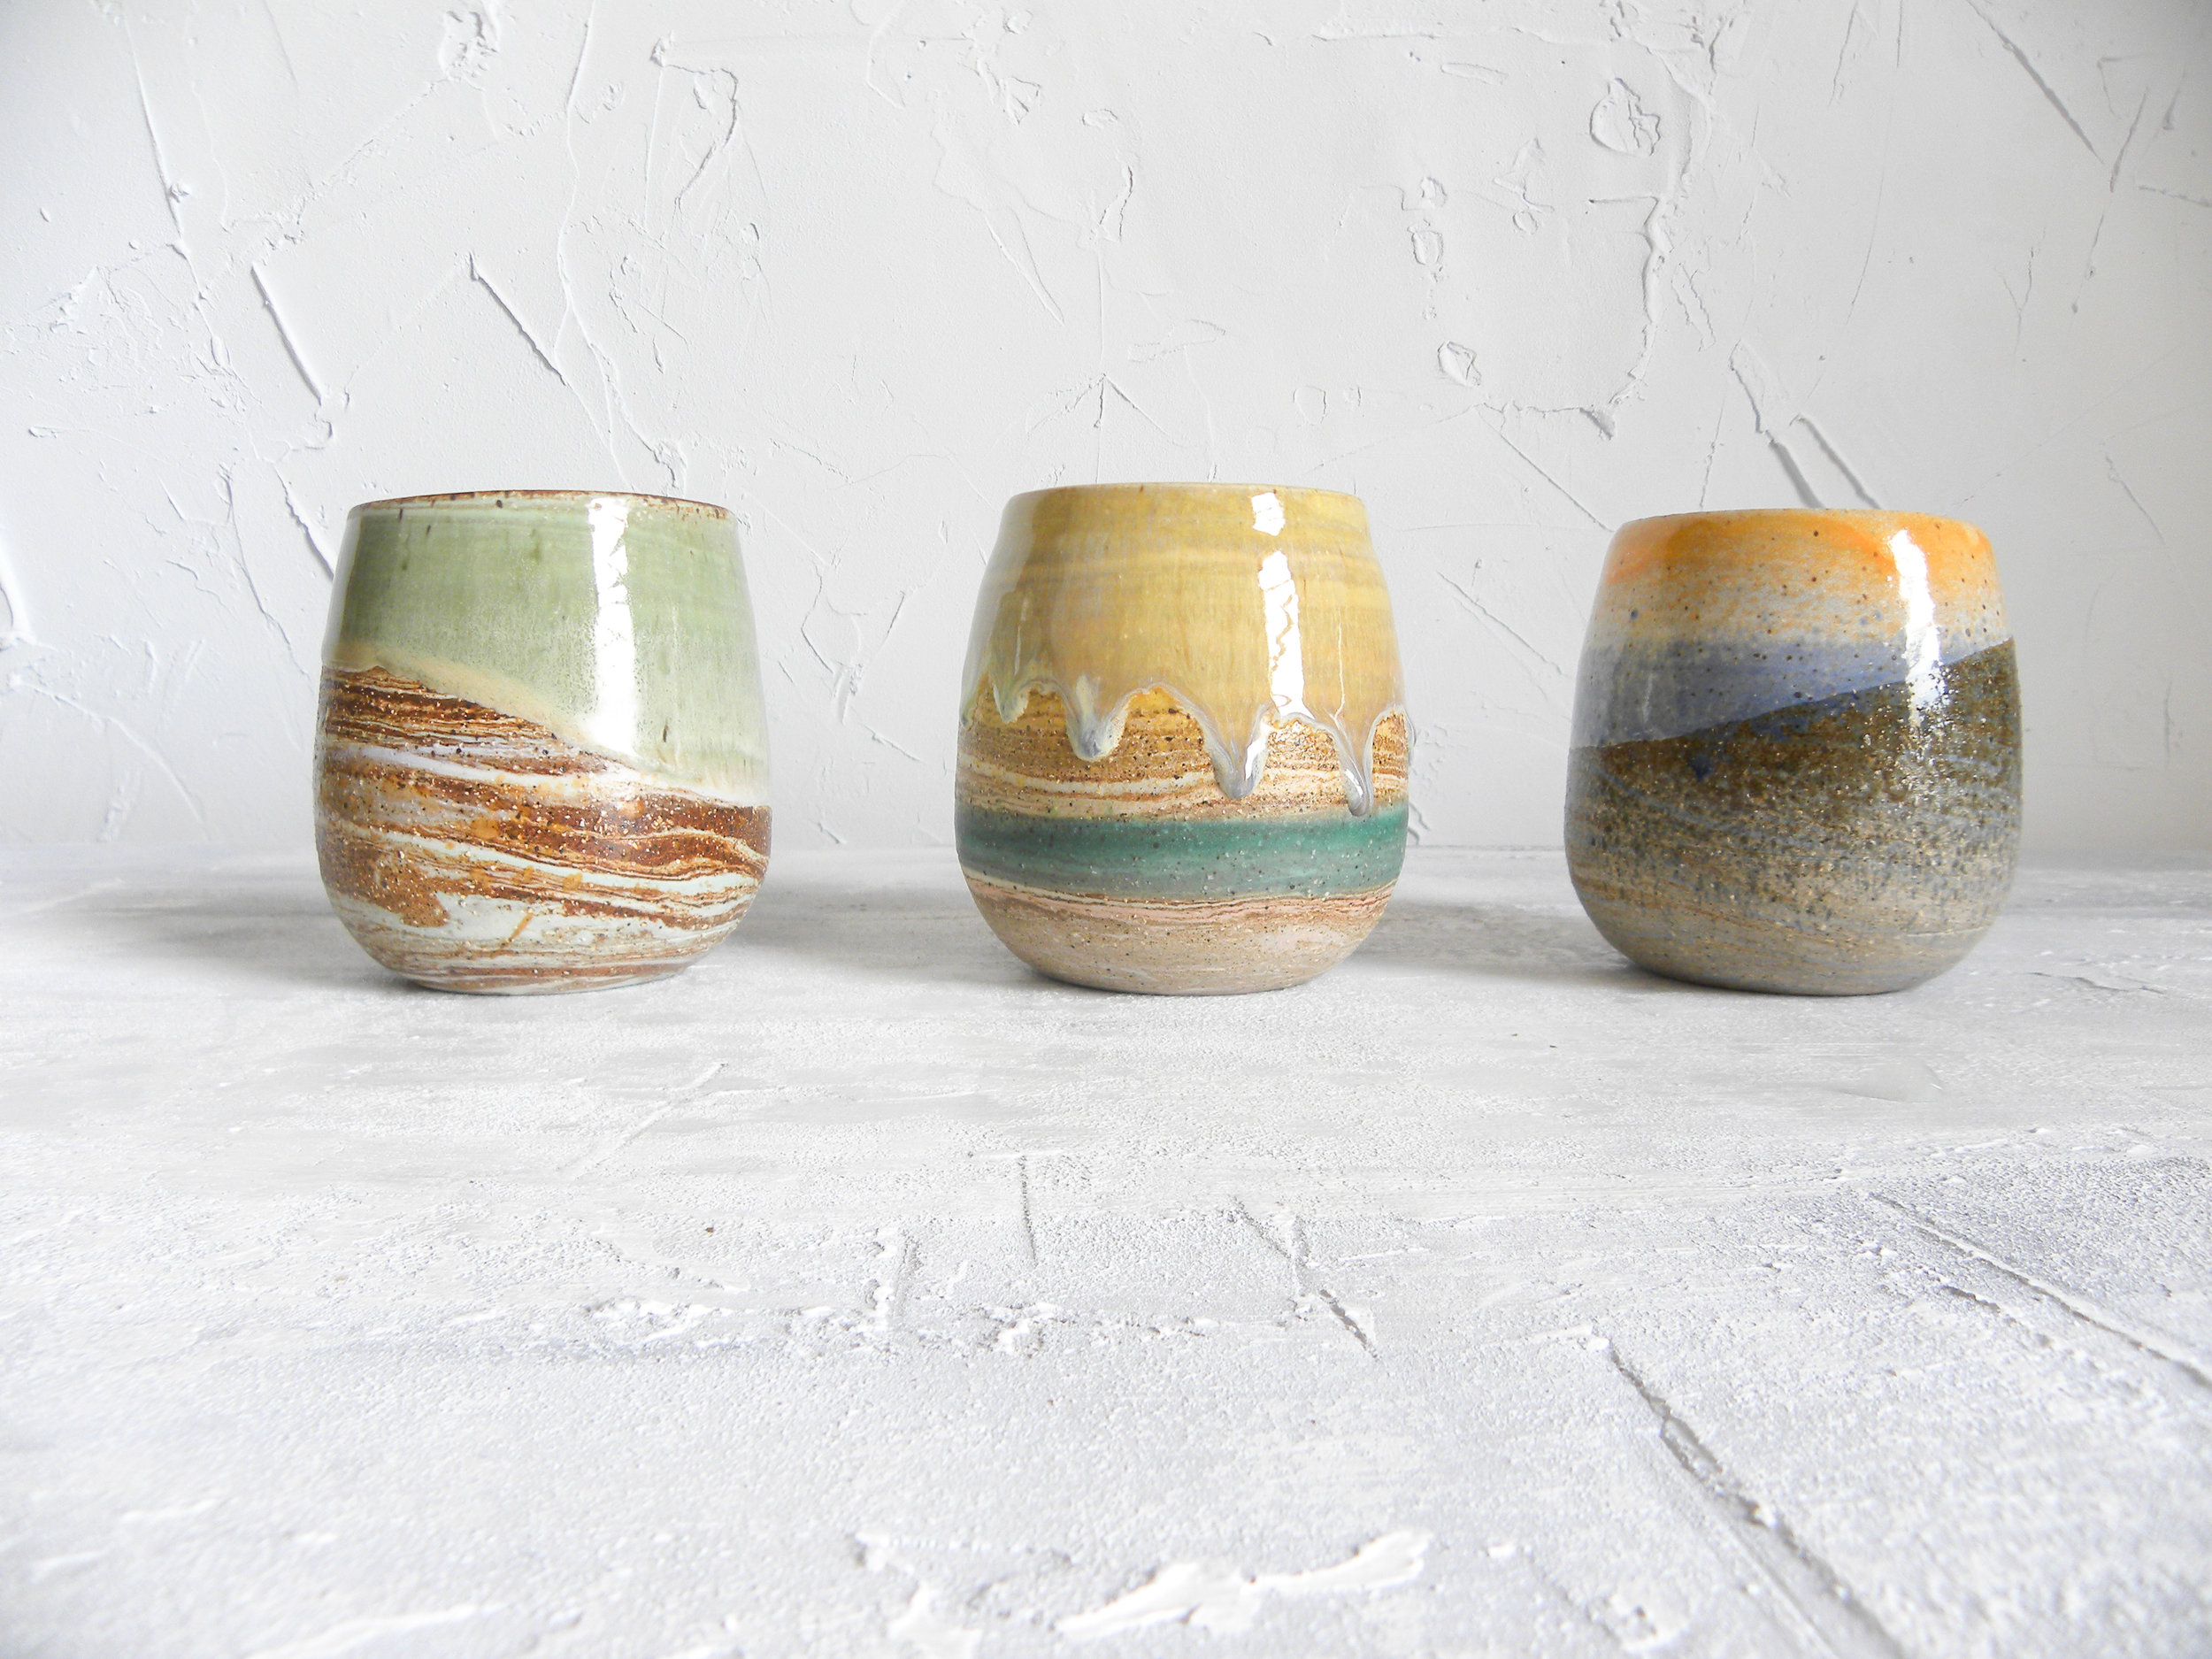 Three color ways on my stemless wine cups- I don't know which is my fav!